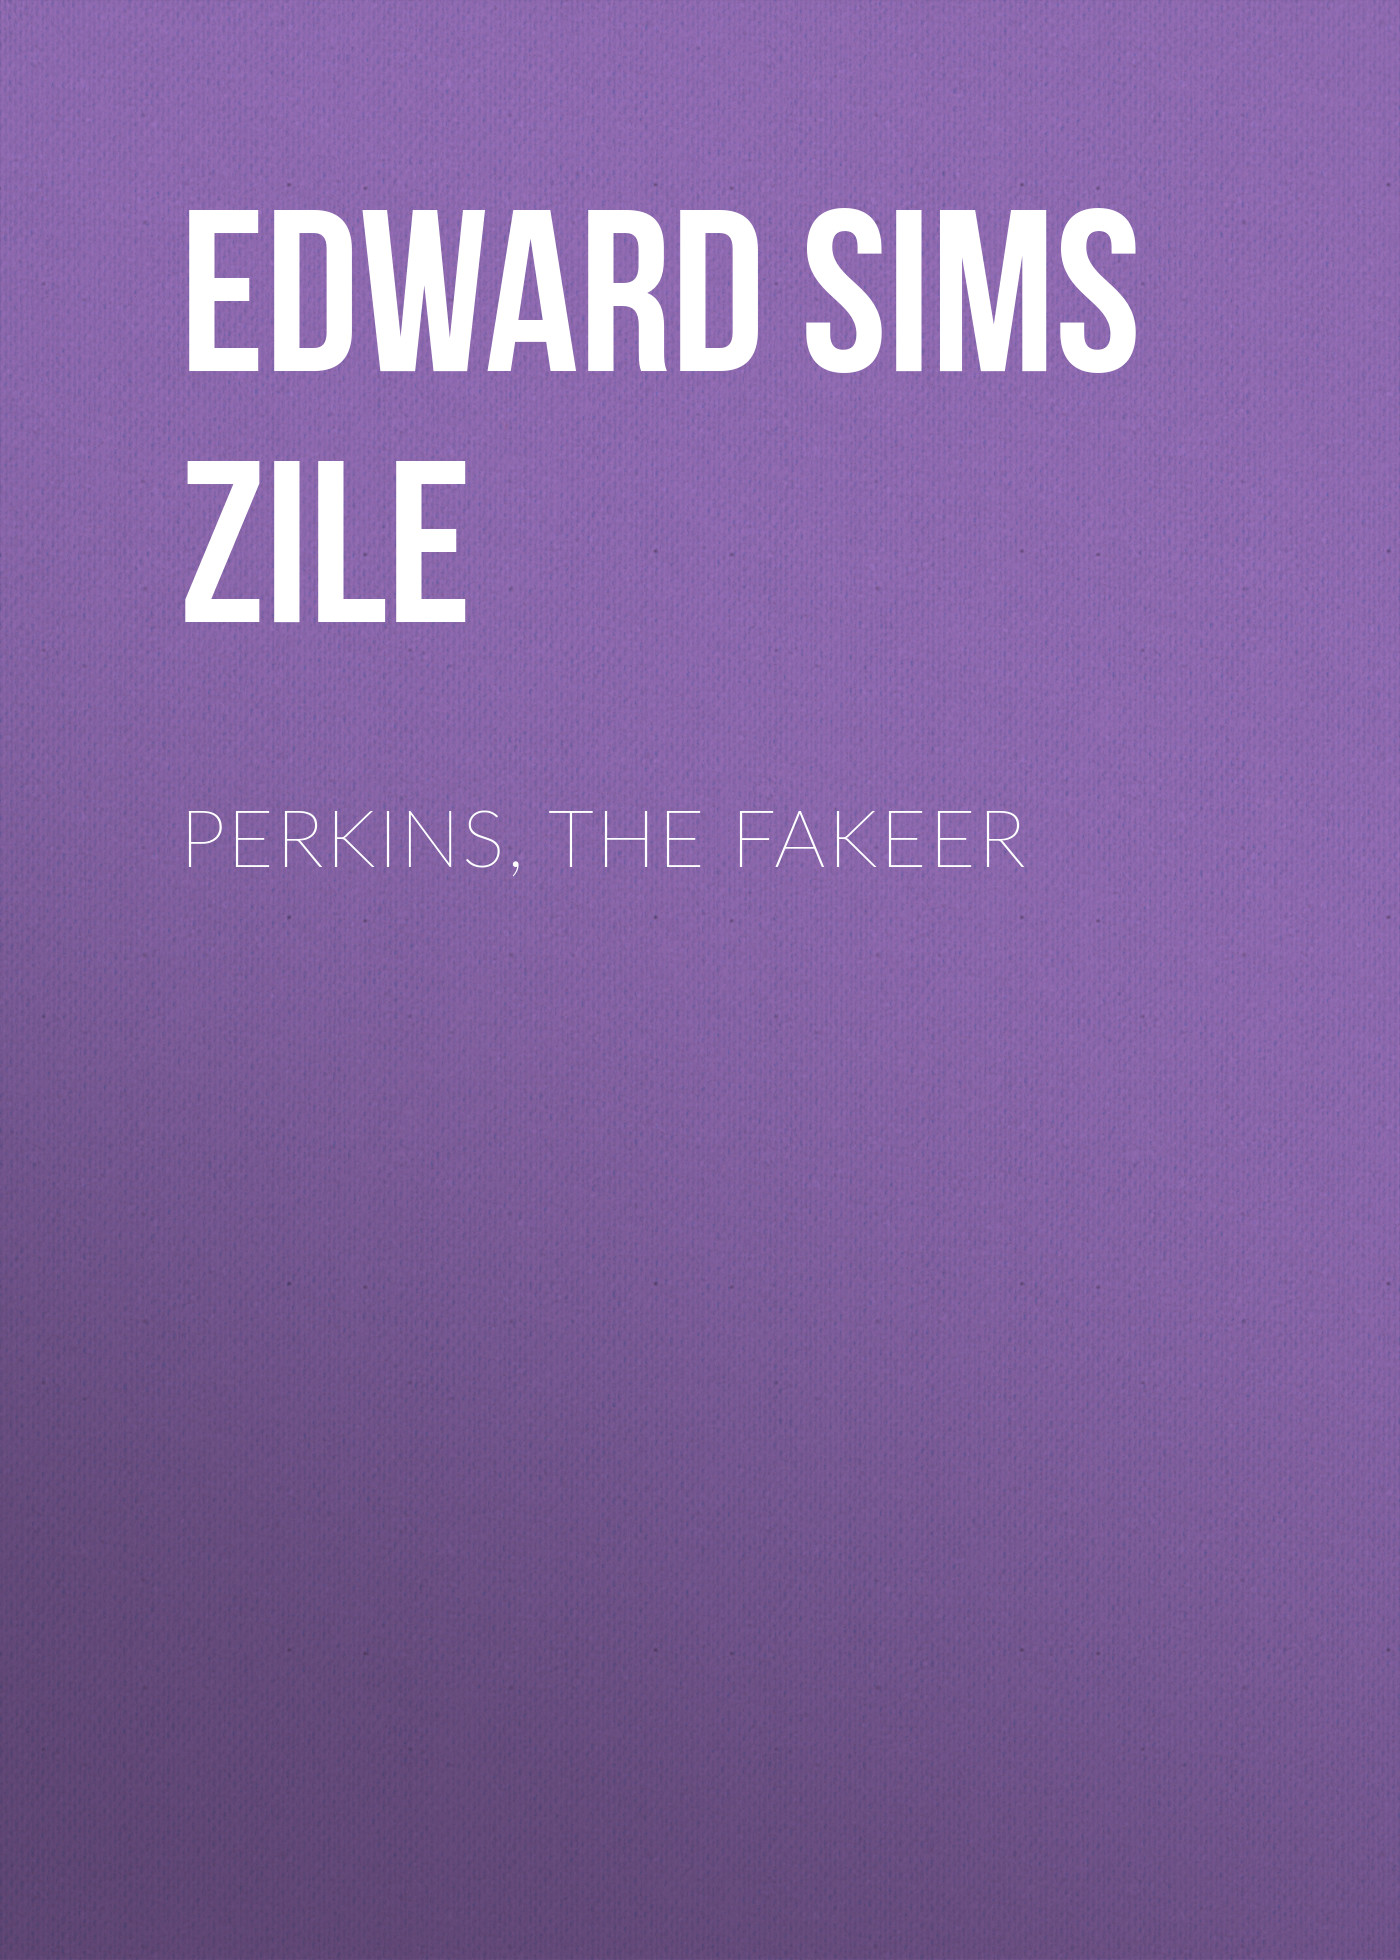 Edward Sims van Zile Perkins, the Fakeer the sims 3 pets